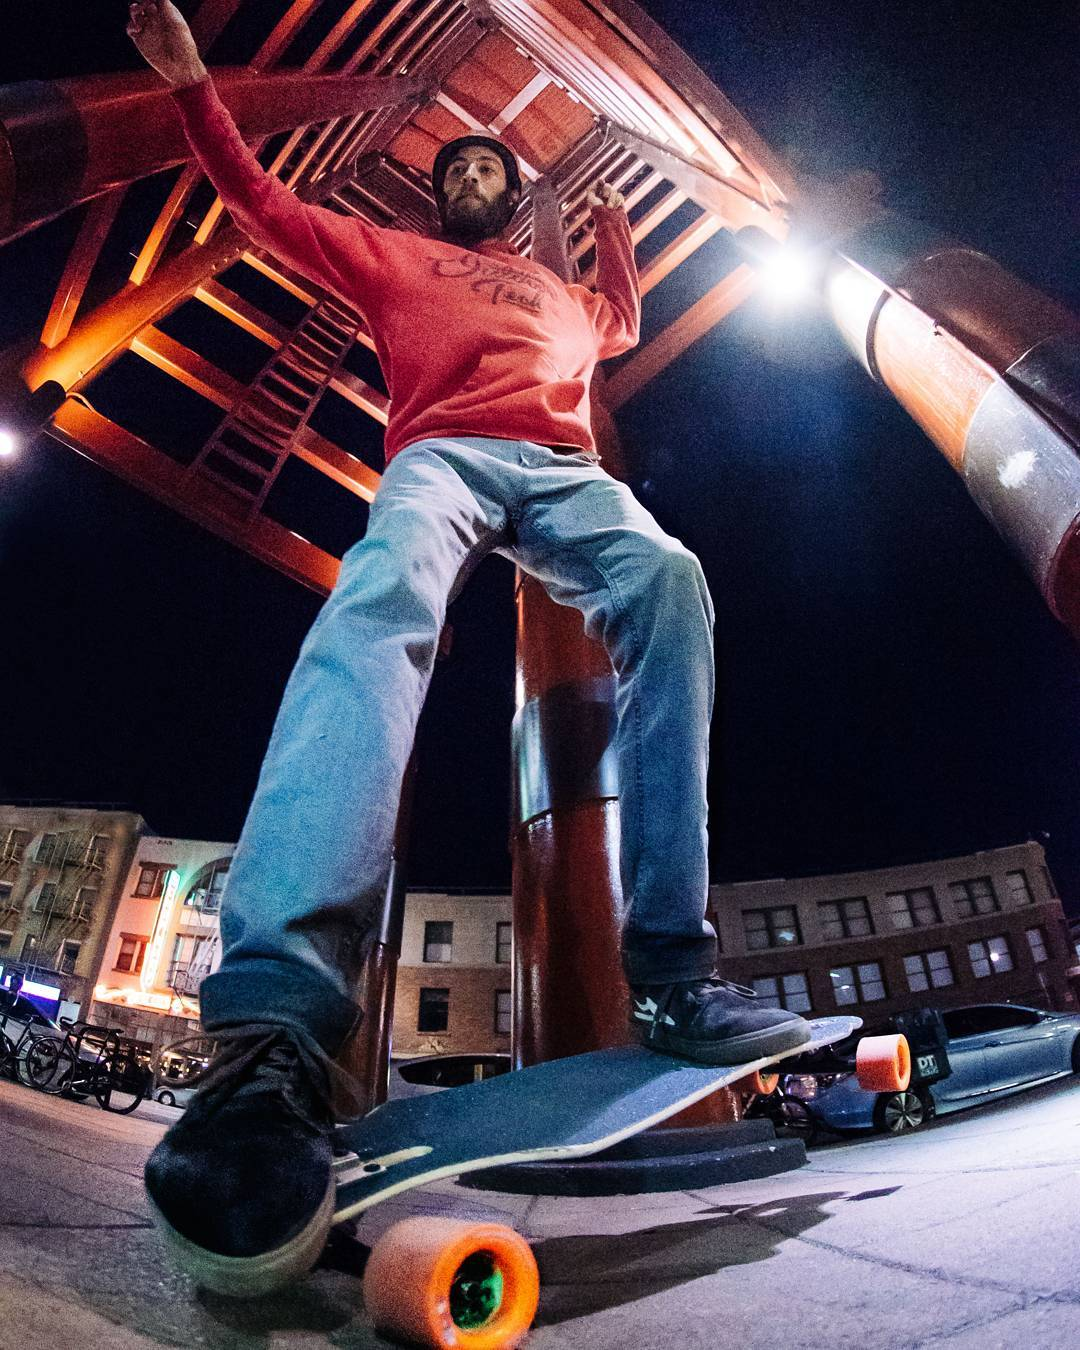 #LoadedAmbassador @AdamStokowski makes use of his subtle nose and tail kicks in his nocturnal urban balance training.  Learn more about the new Icarus by clicking the link in our bio!  Photo: Christian Rosillo  #LoadedBoards #LoadedIcarus #Icarus...